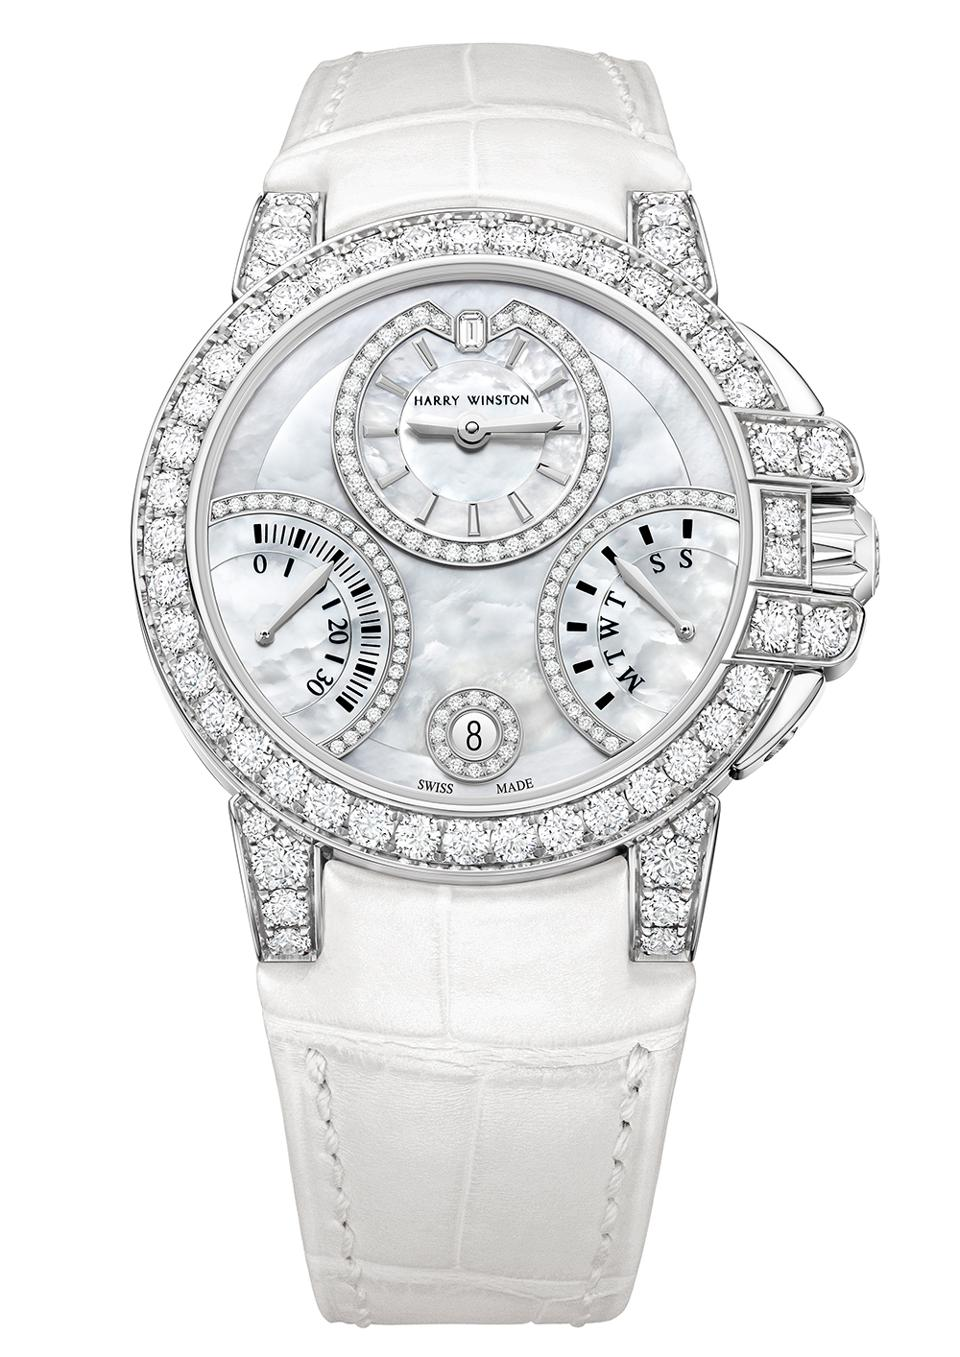 Diamond and 18k white gold watch from the Harry Winston Ocean Biretrograde Automatic 36mm collection.